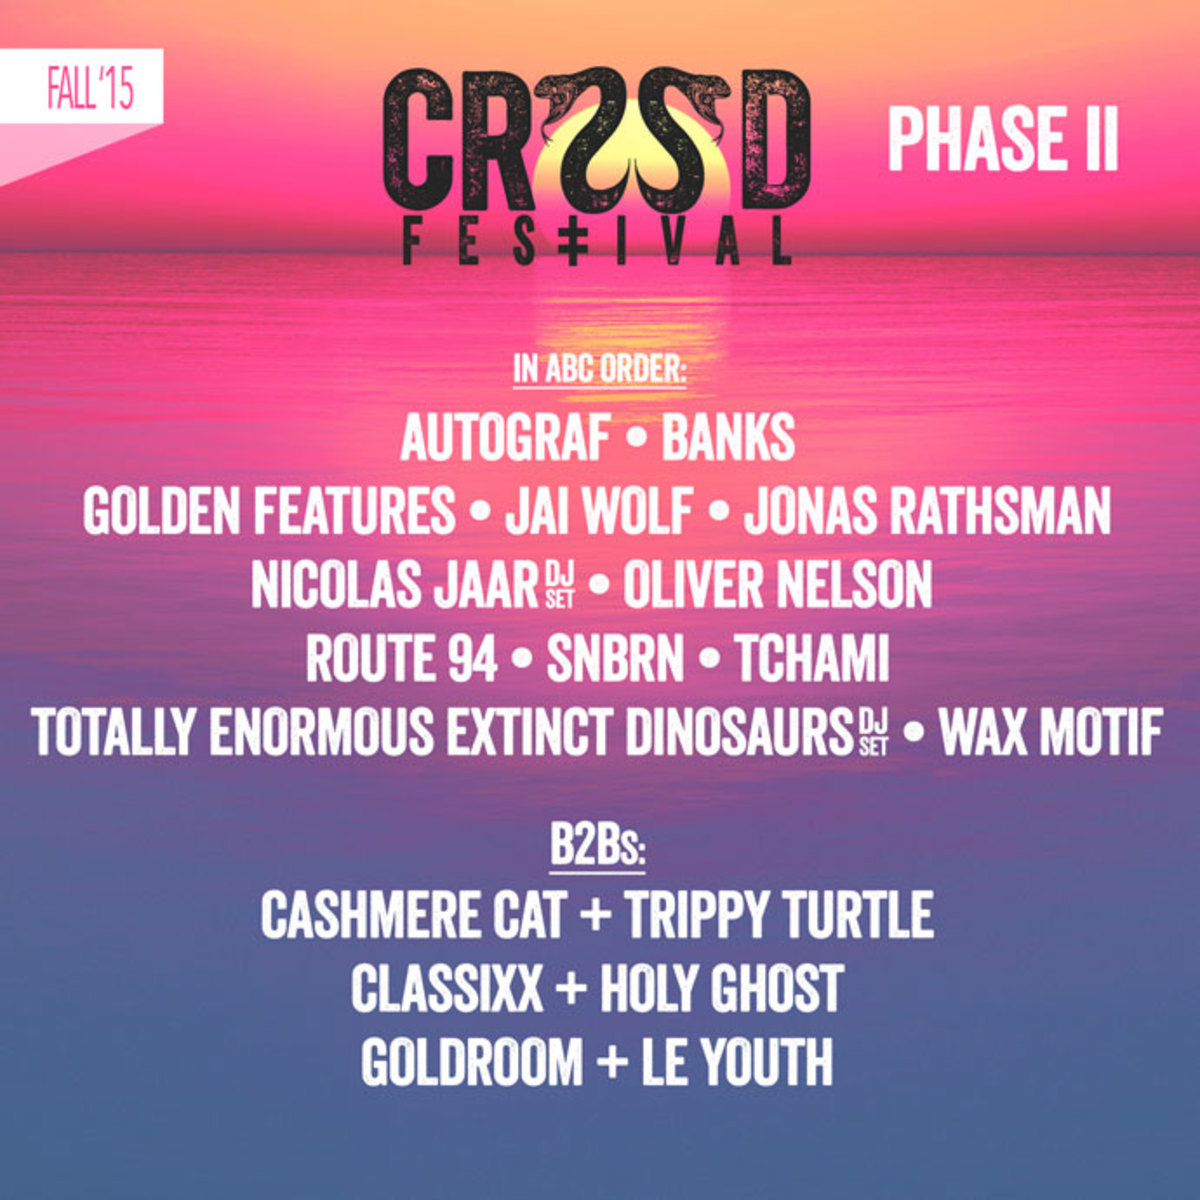 CRSSD Festival Announces Phase II Lineup